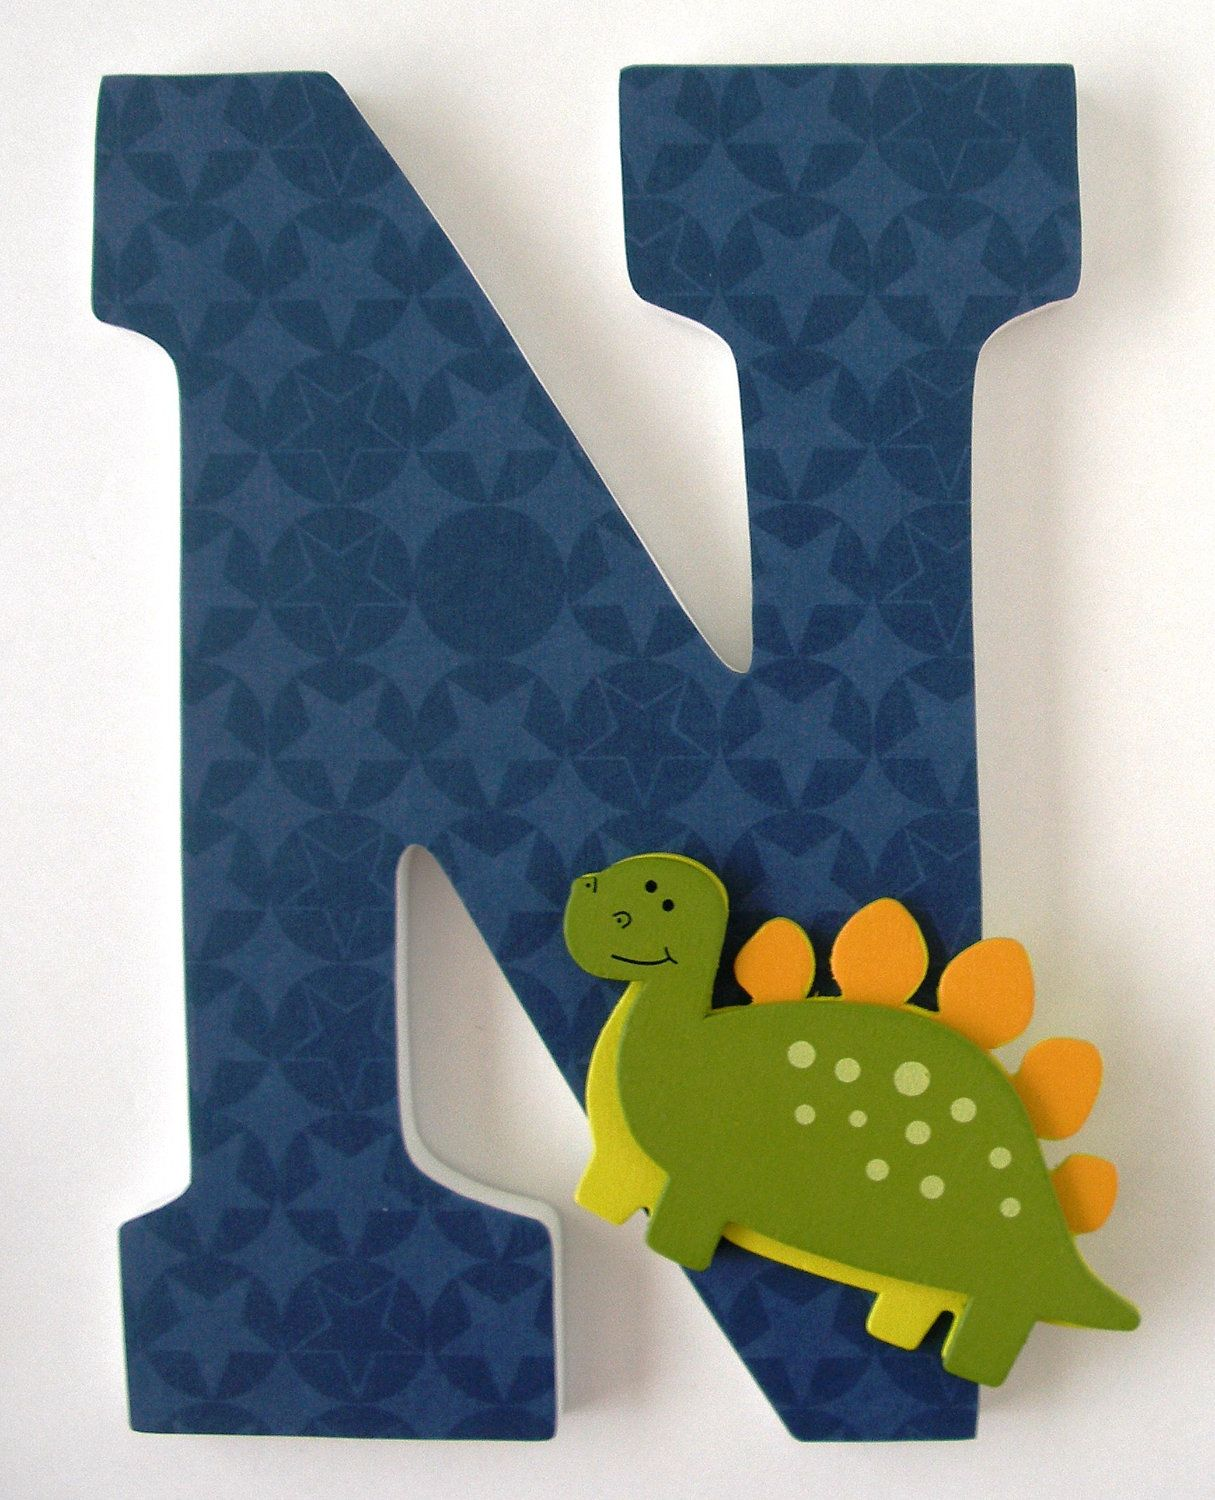 Personalized Wall Decor Letters : Custom decorated wooden letters dinosaur theme nursery